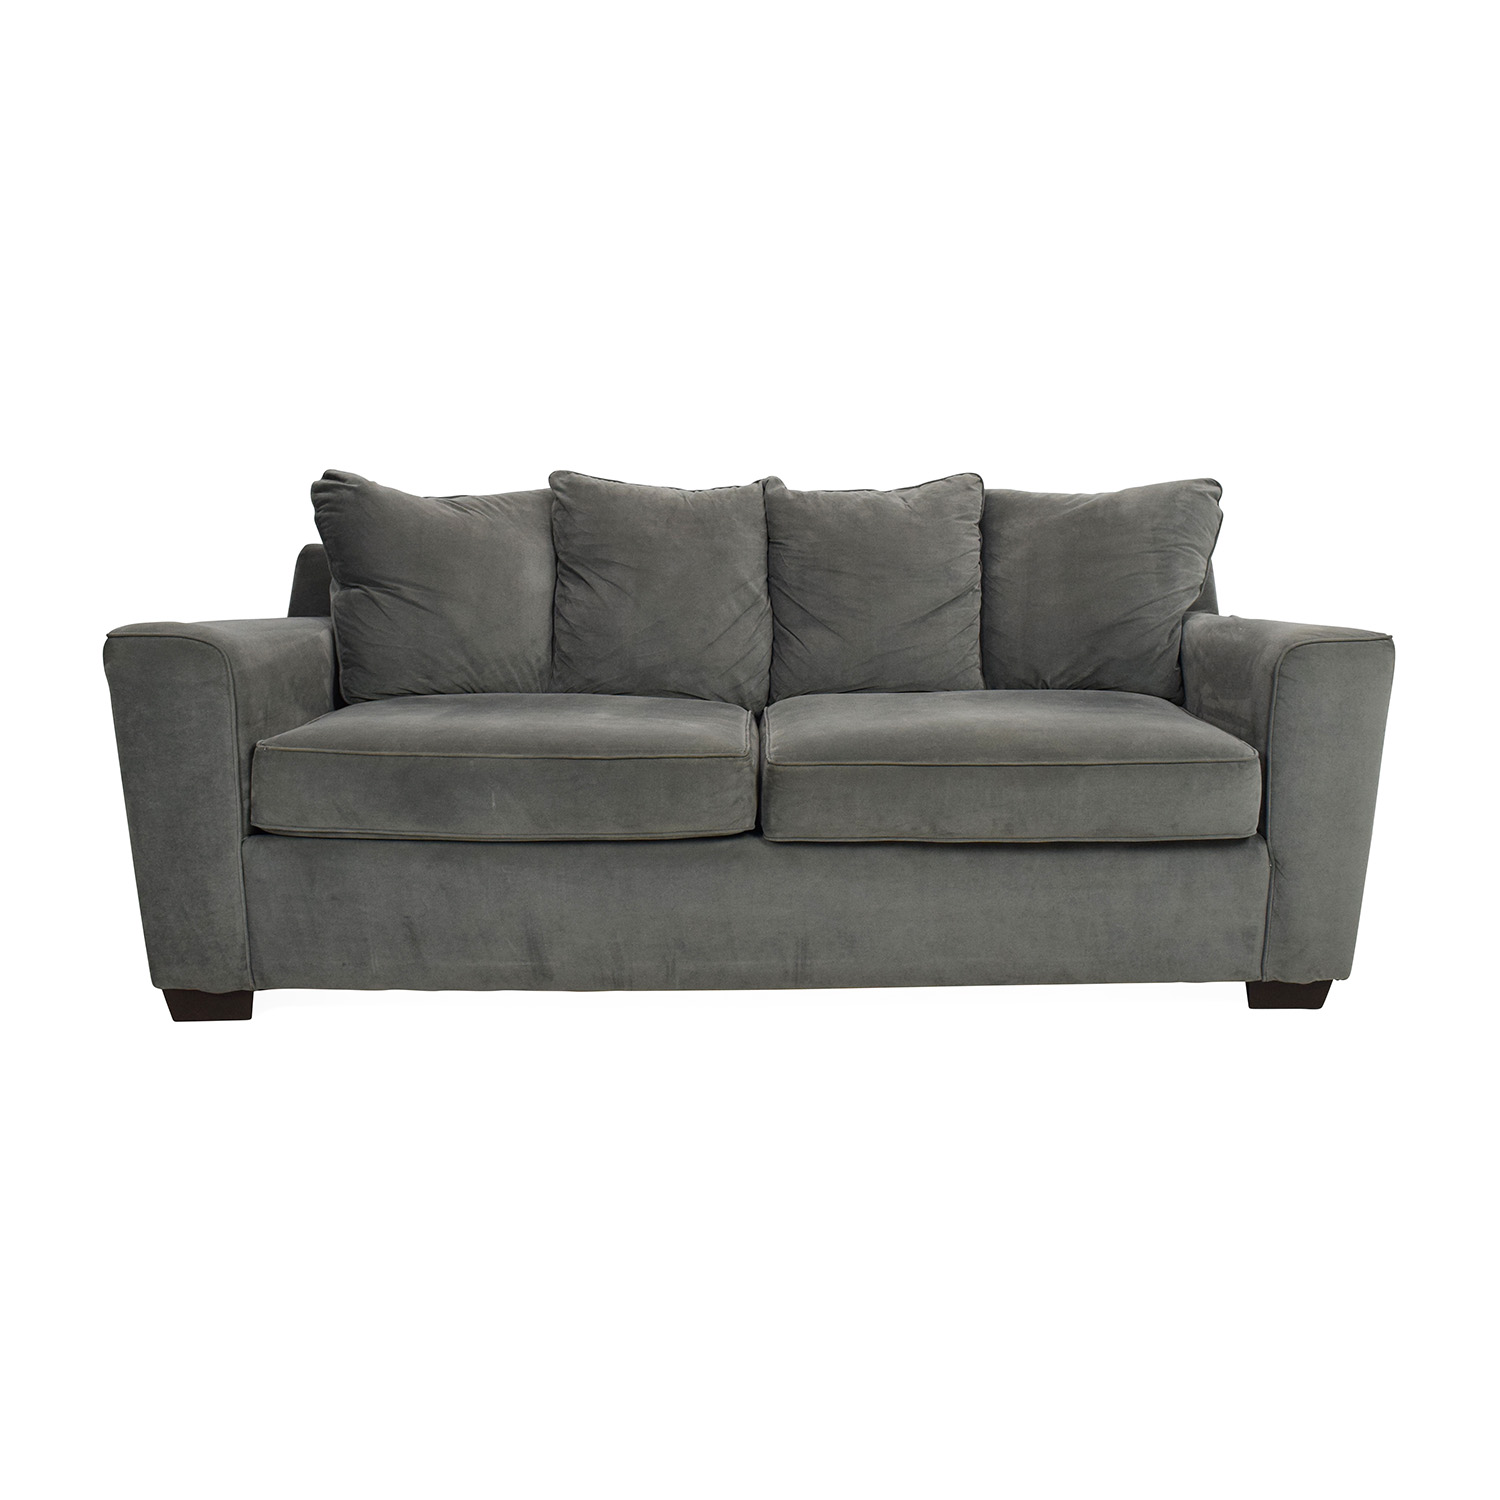 Jennifer Convertibles Reclining Sofa Convertible